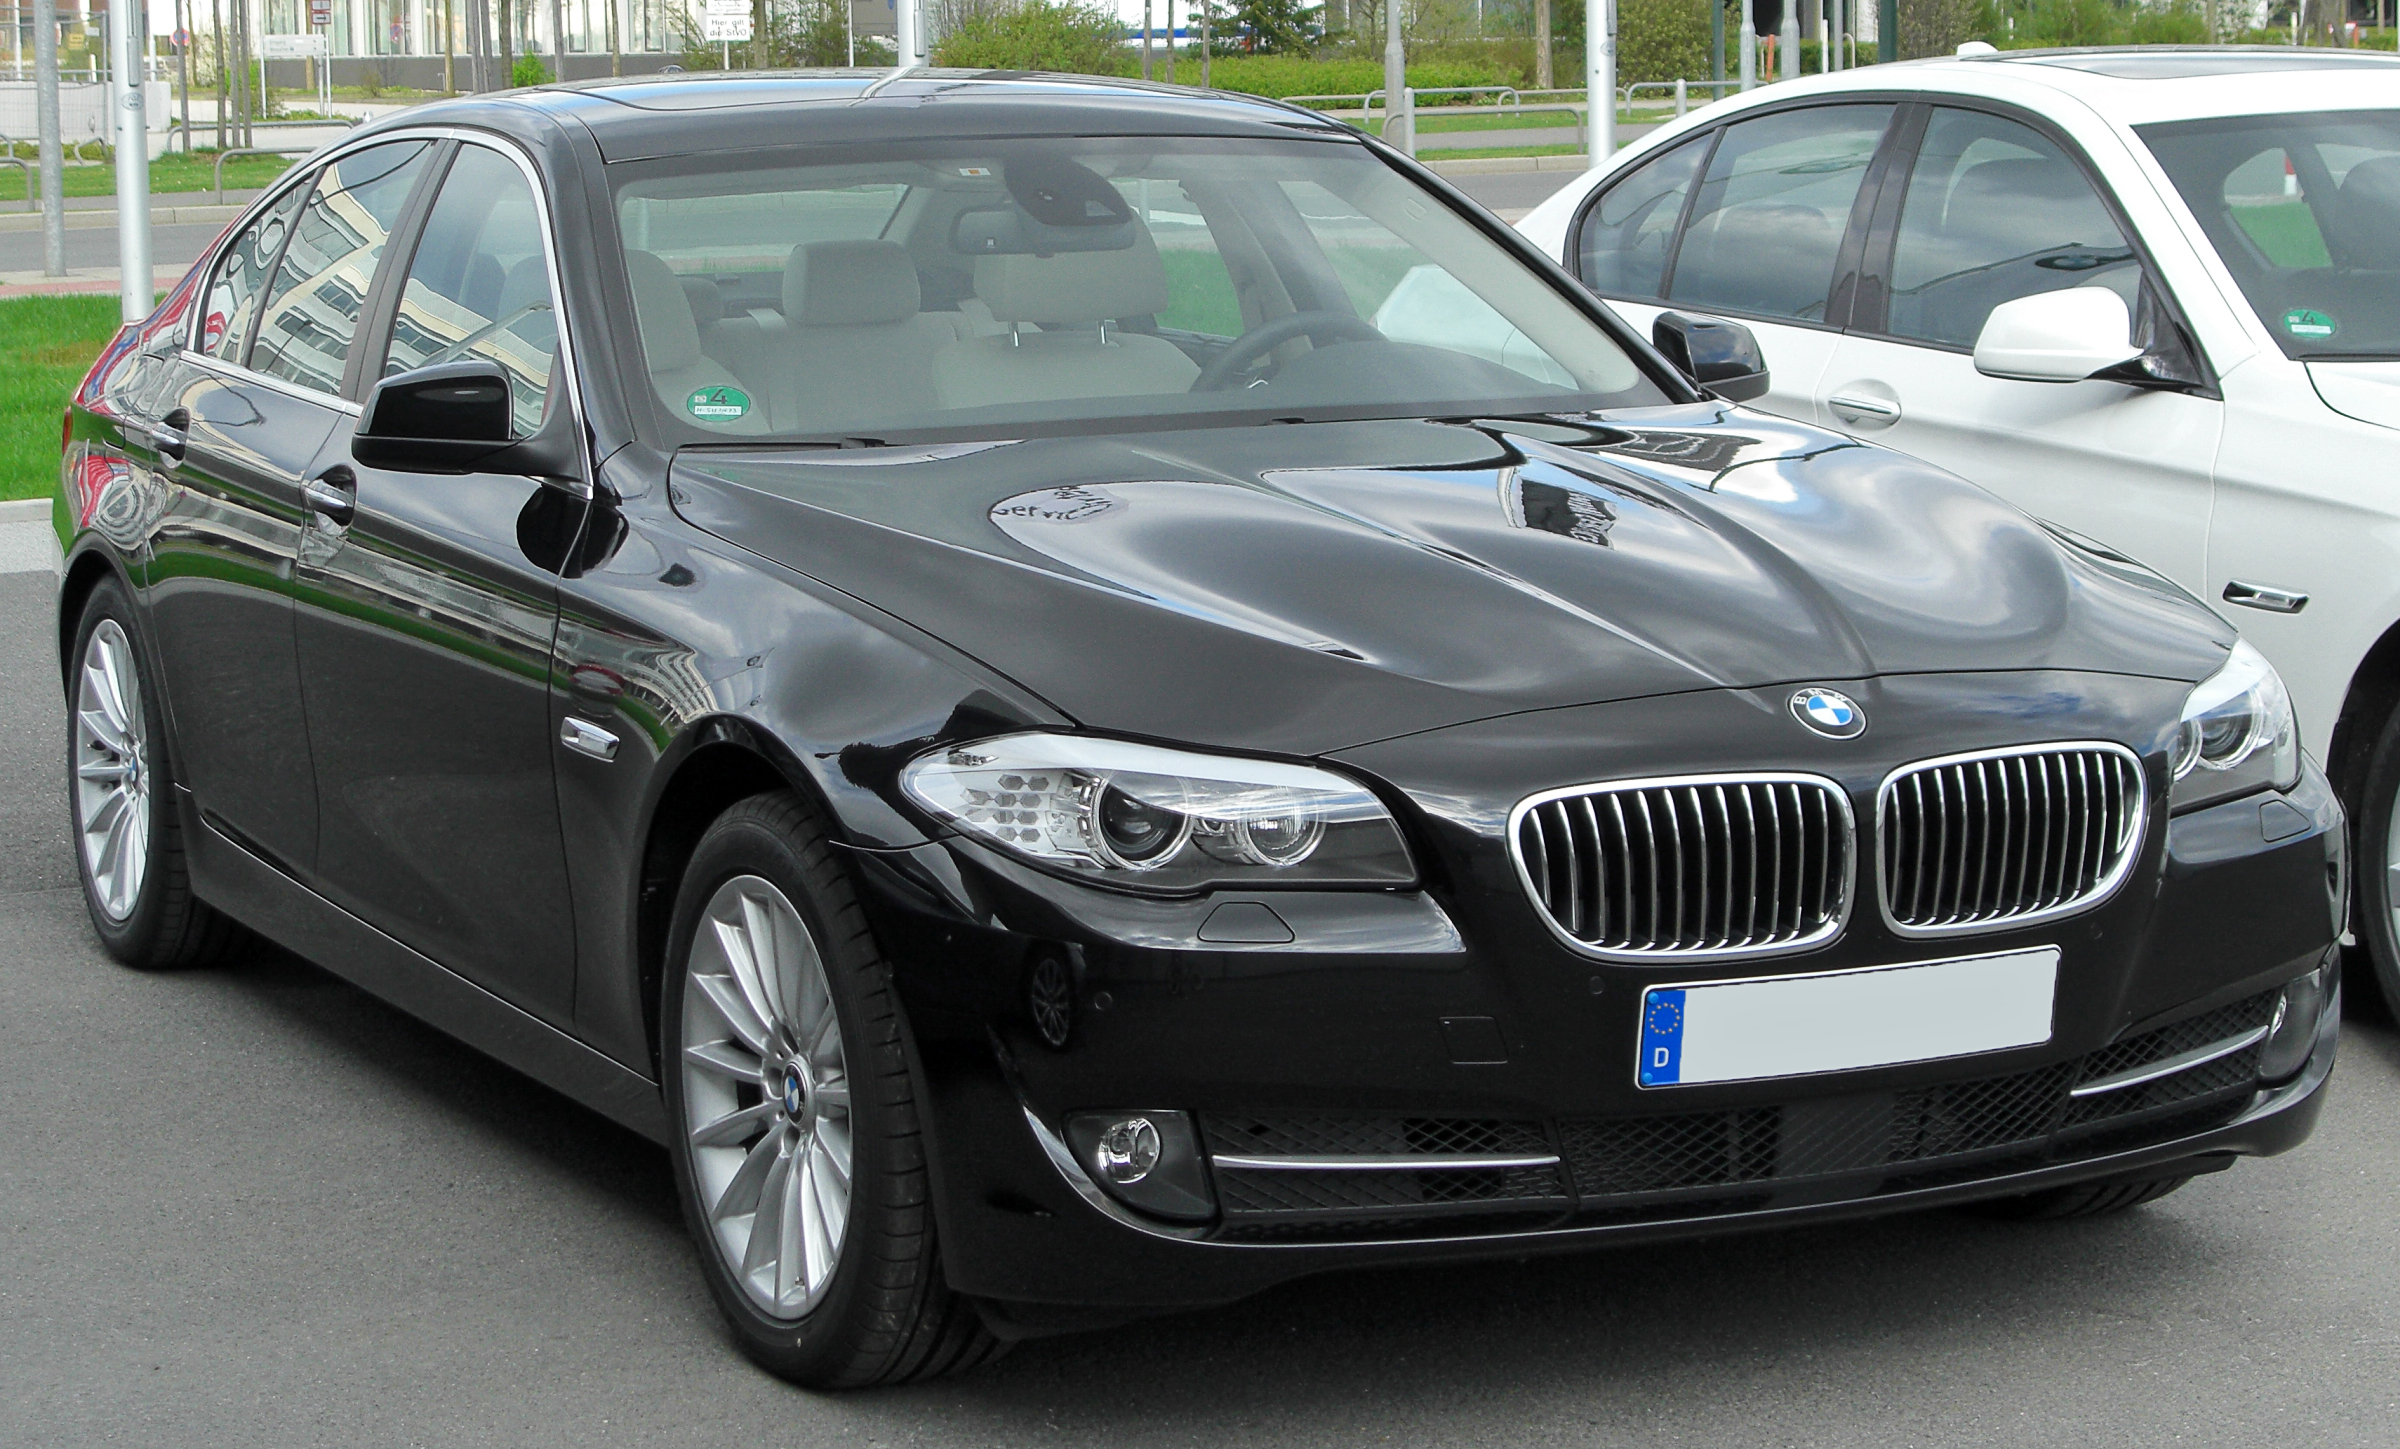 File Bmw 530d F10 Front 20100410 Jpg Wikimedia Commons